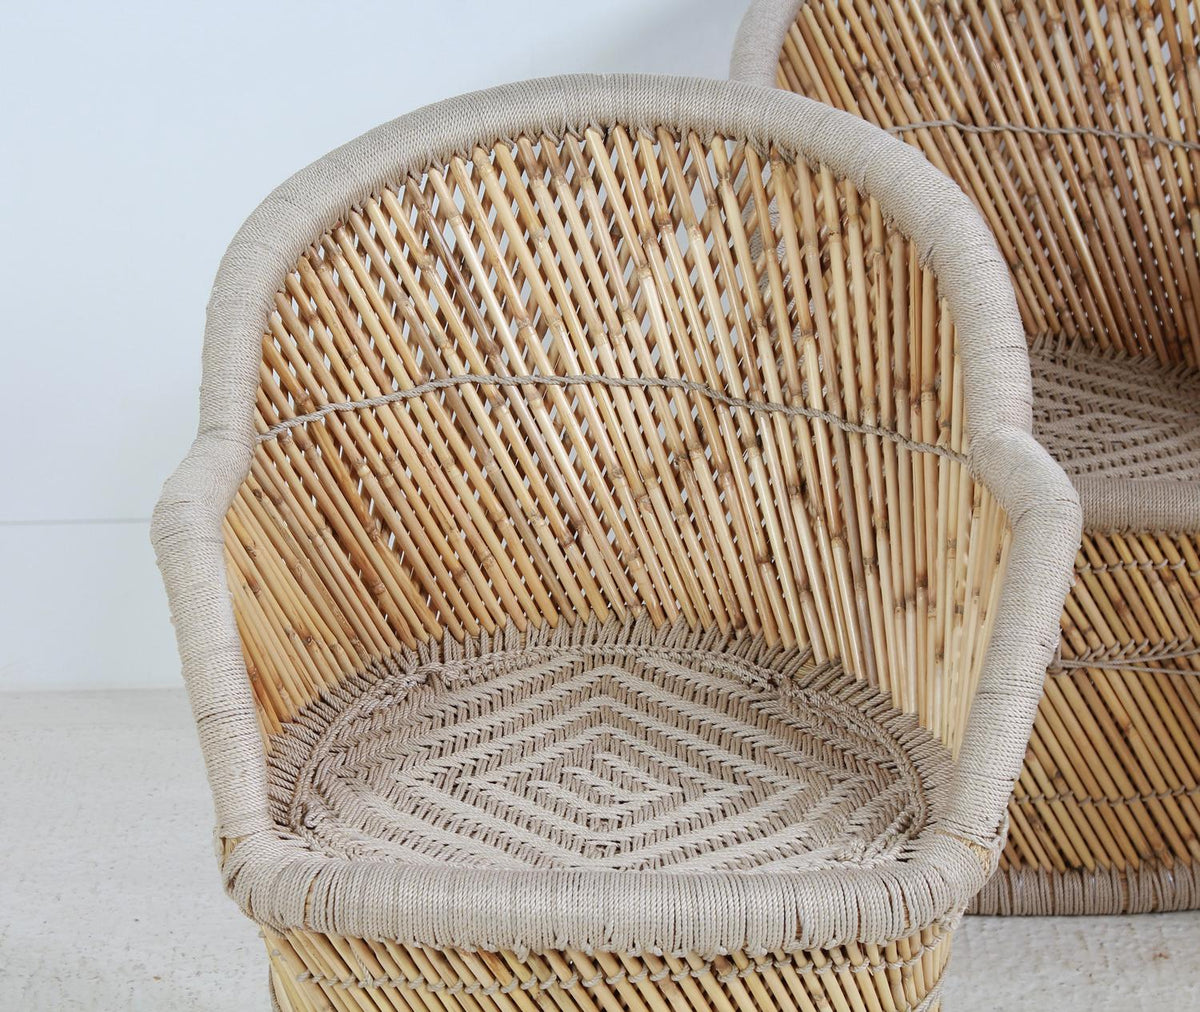 Pair of Natural Bamboo Chairs with Woven seats